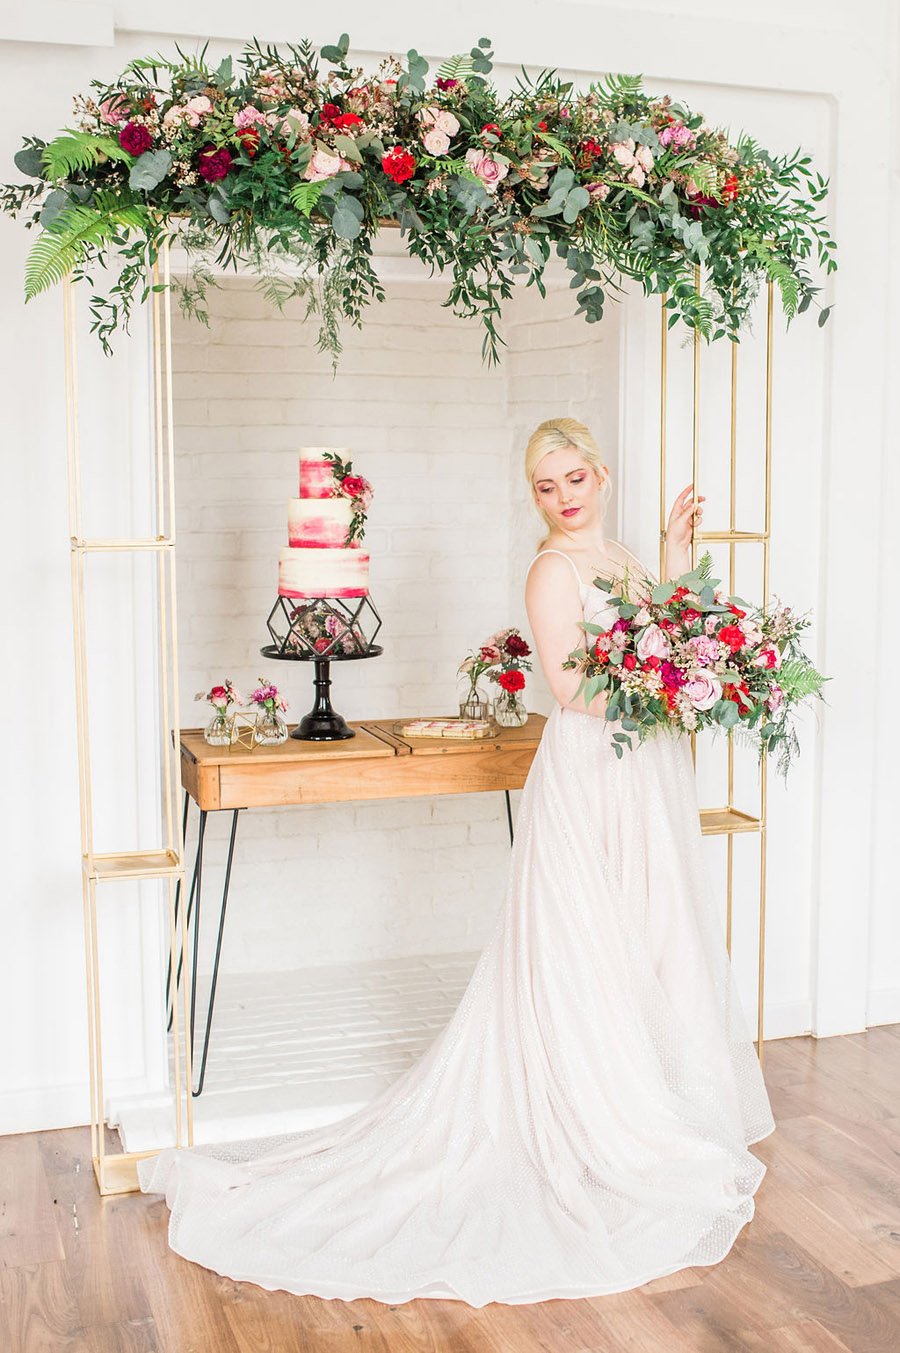 Modern luxe wedding style ideas with images by Laura Jane Photography (22)